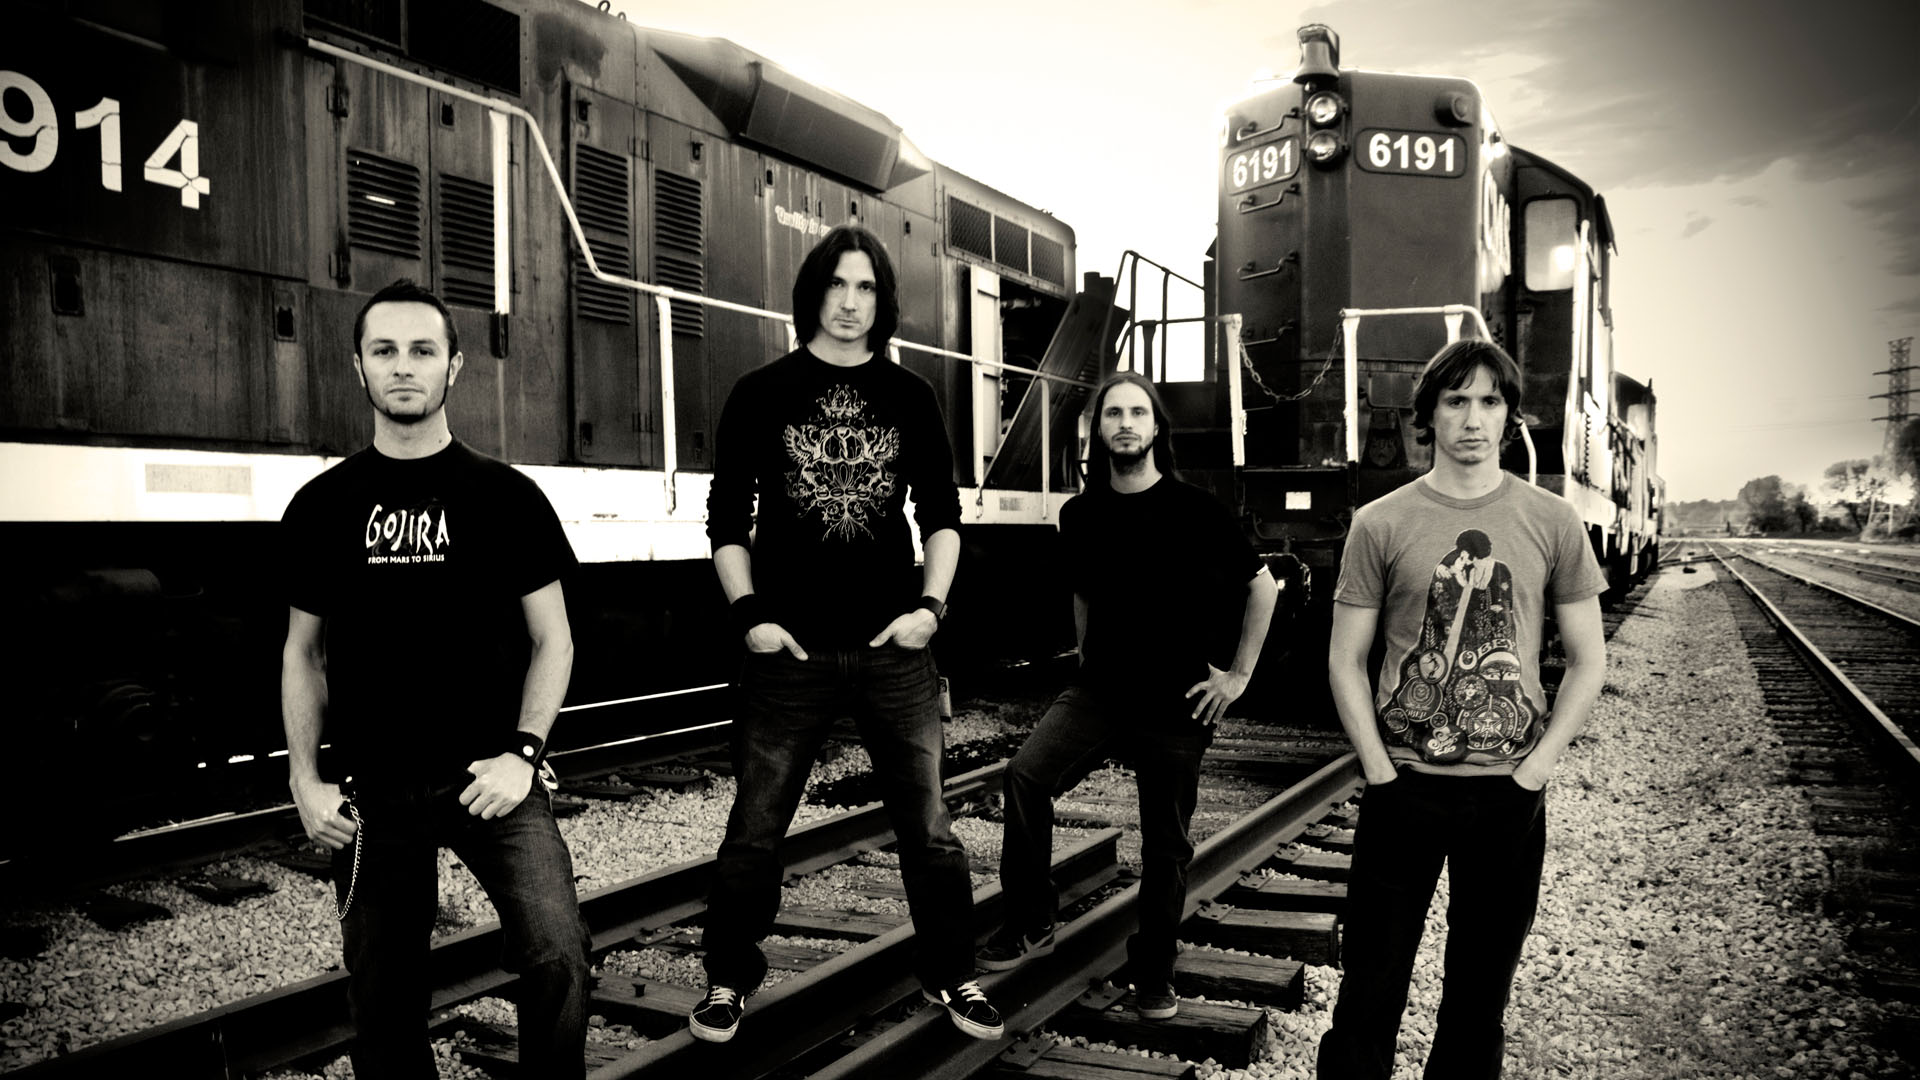 Gojira hd wallpaper background image 1920x1080 id 199452 wallpaper abyss - Gojira band wallpaper ...